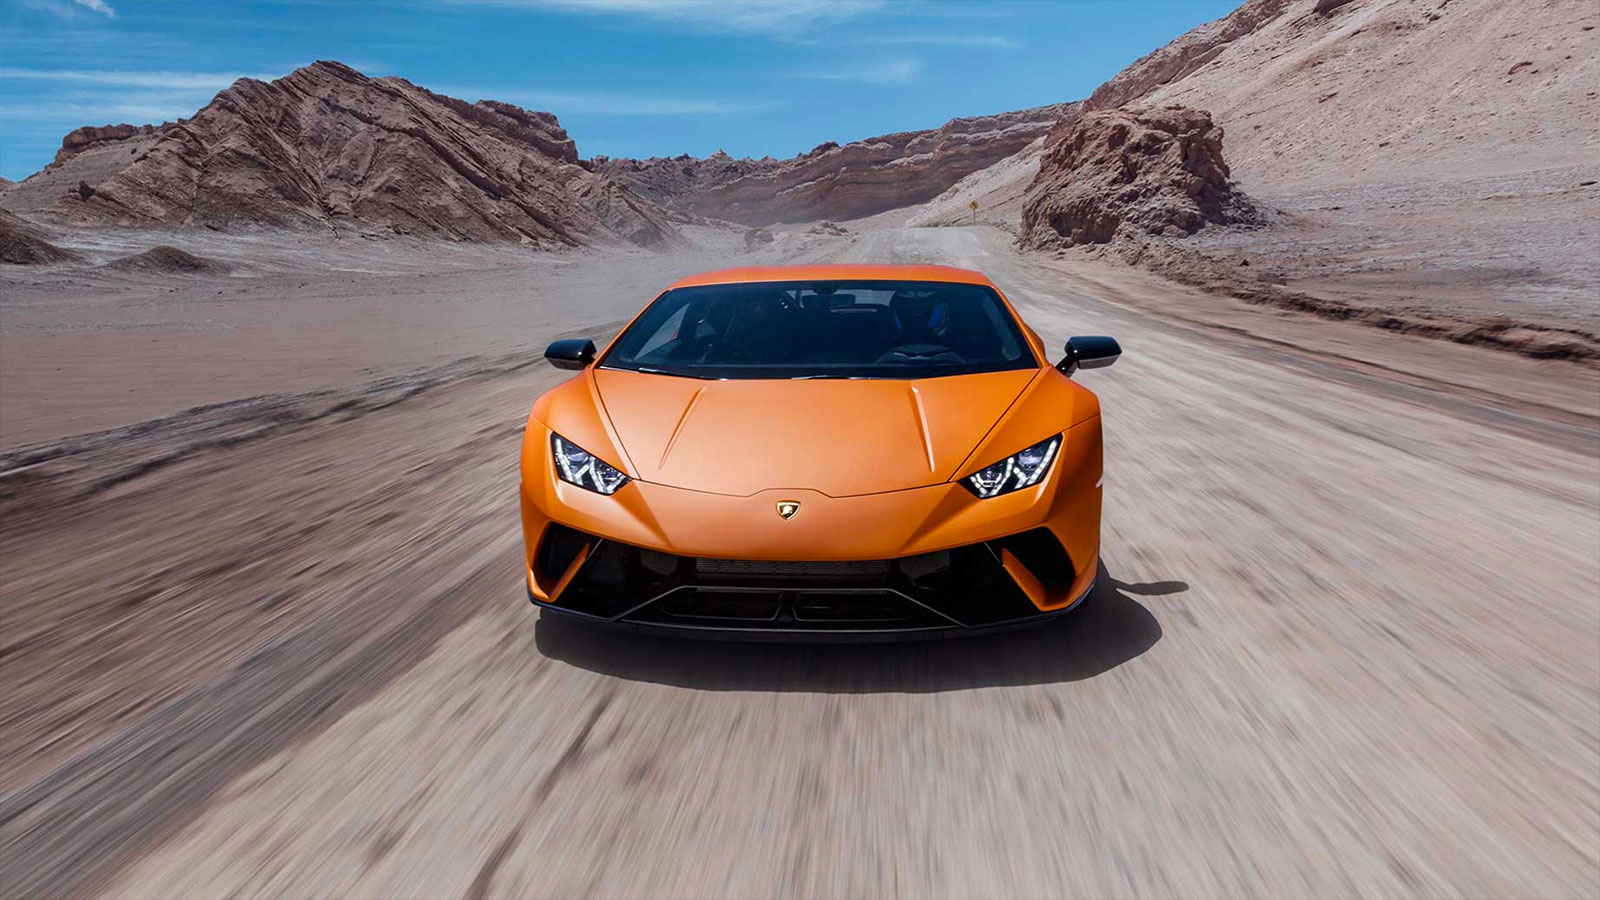 Lamborghini Huracan Performante - Raging Technology image 6